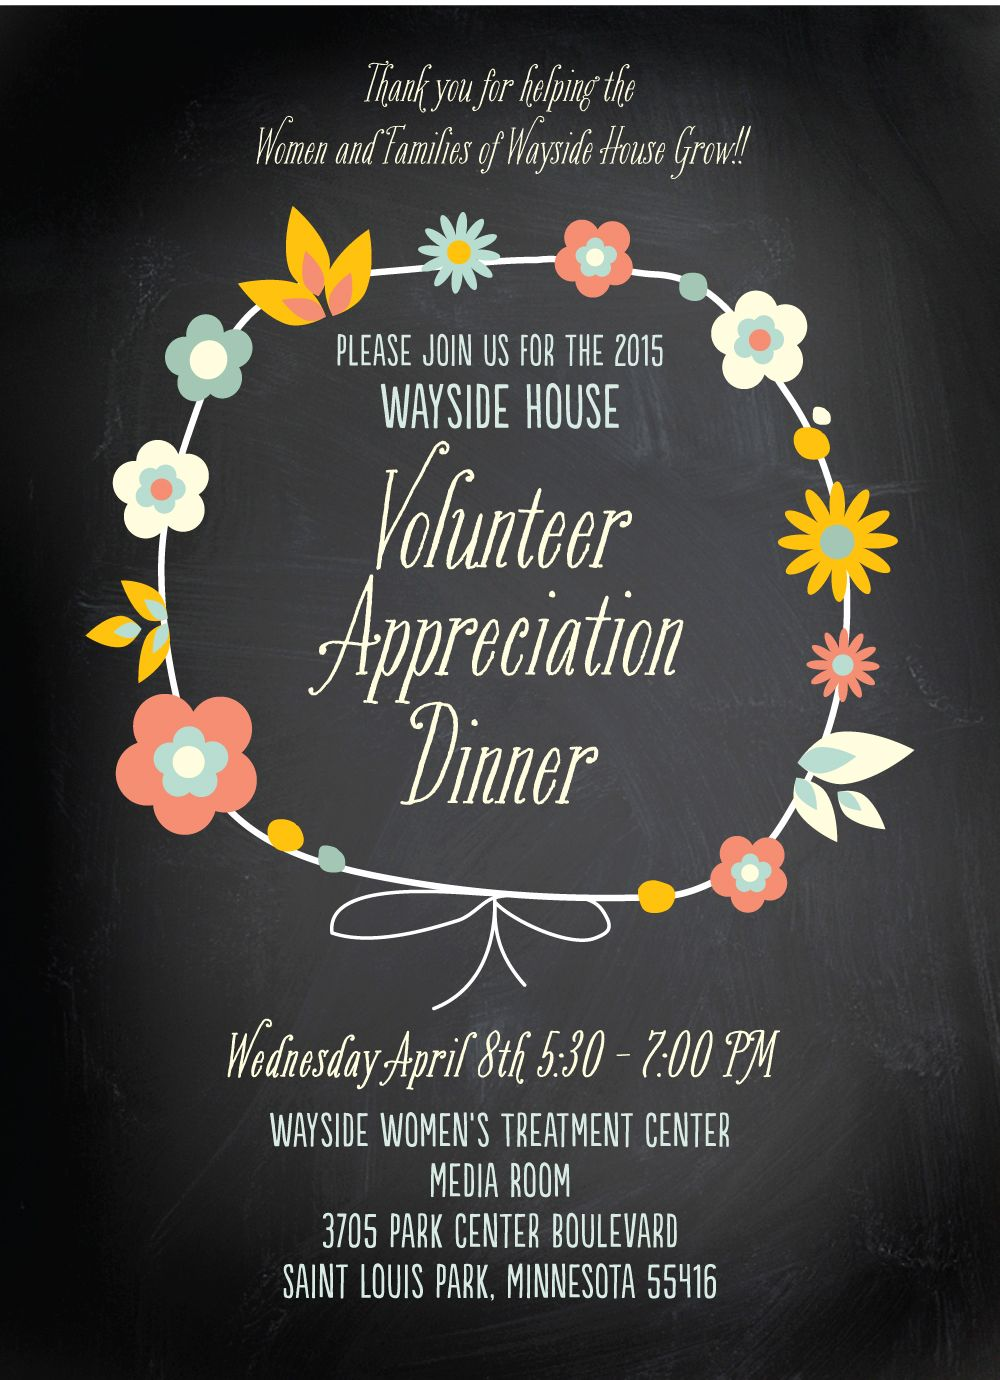 Official Invite 2015 Volunteer Appreciation Dinner Volunteer